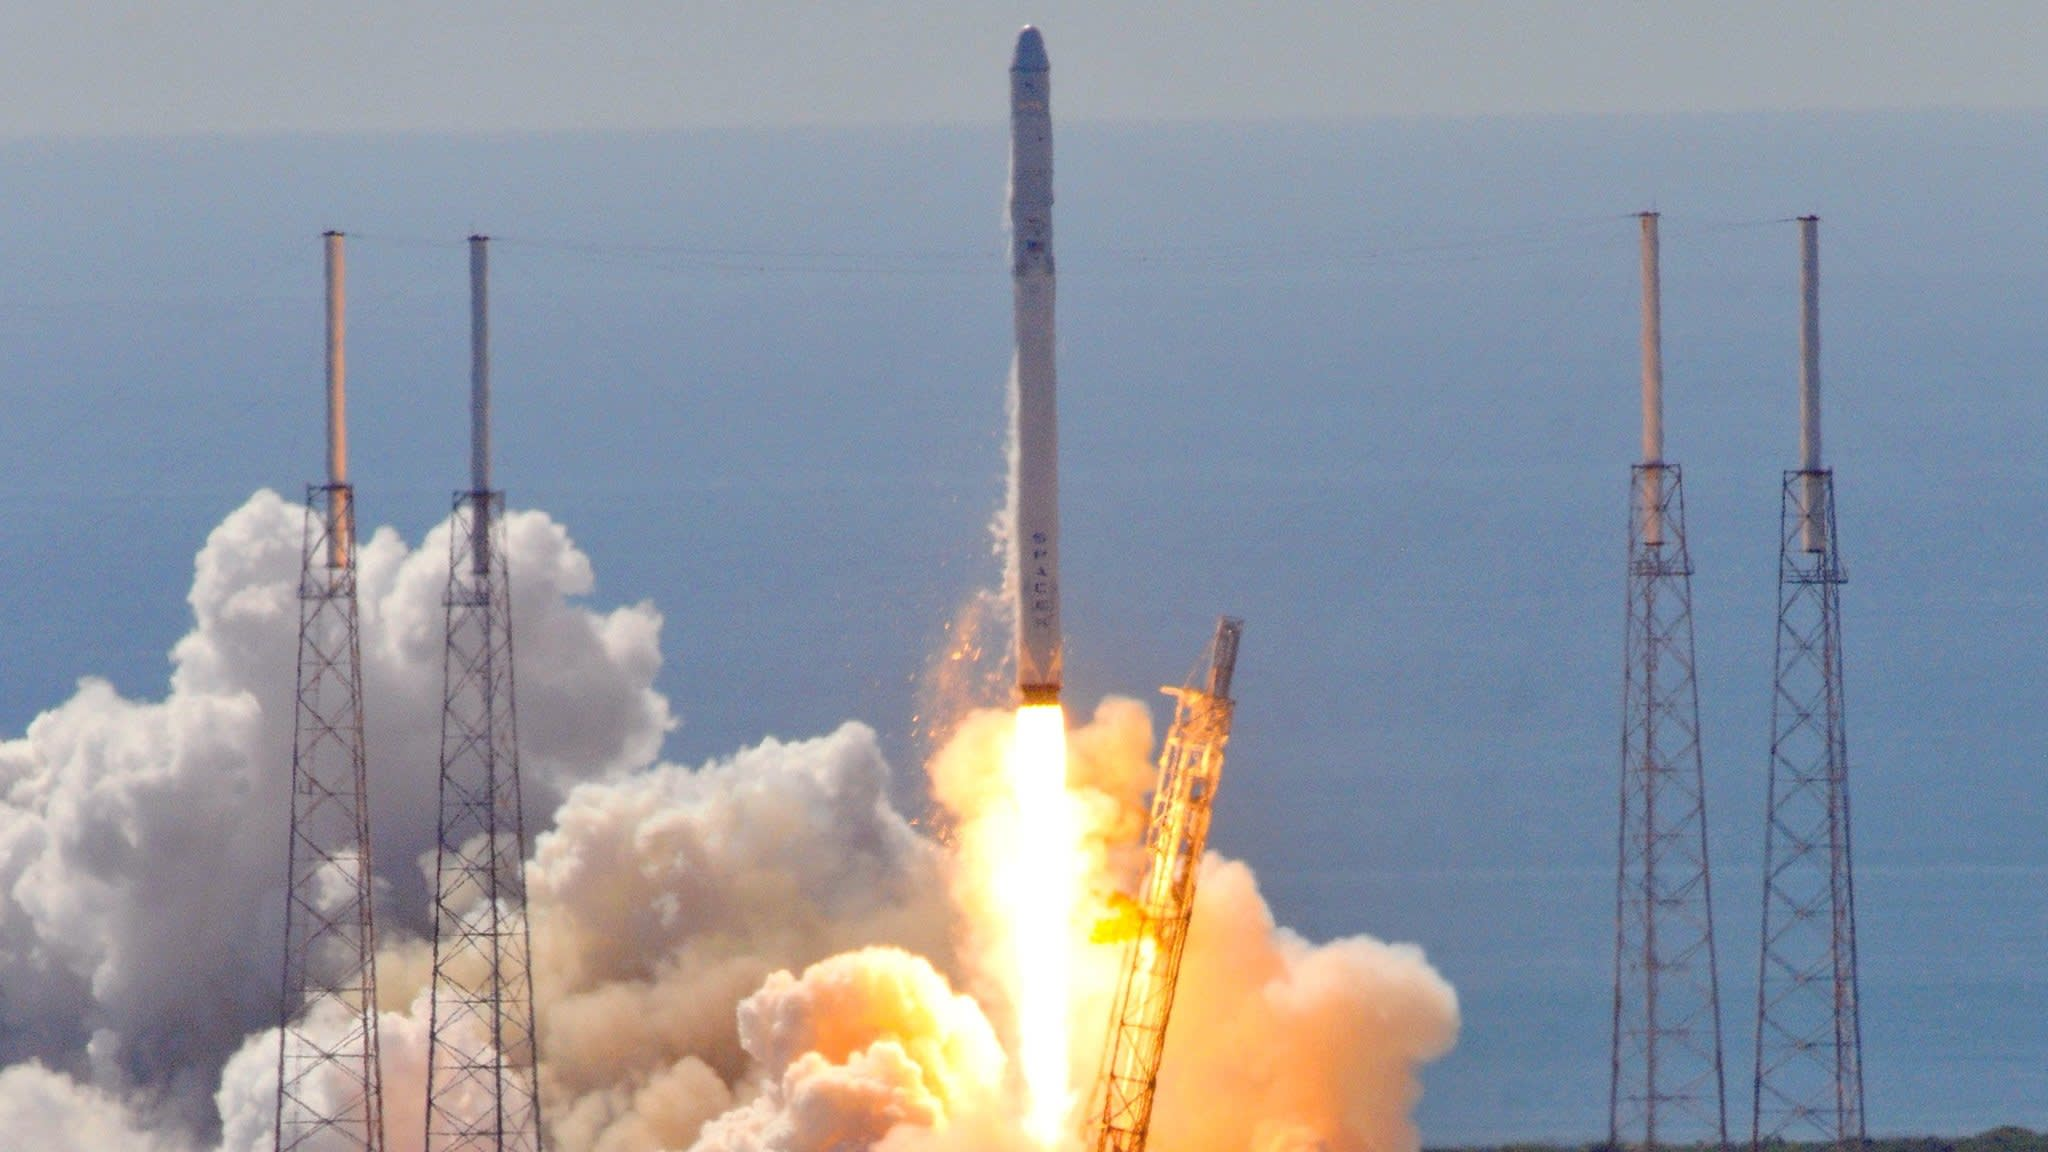 Science and engineering: A new kind of space race | Financial Times